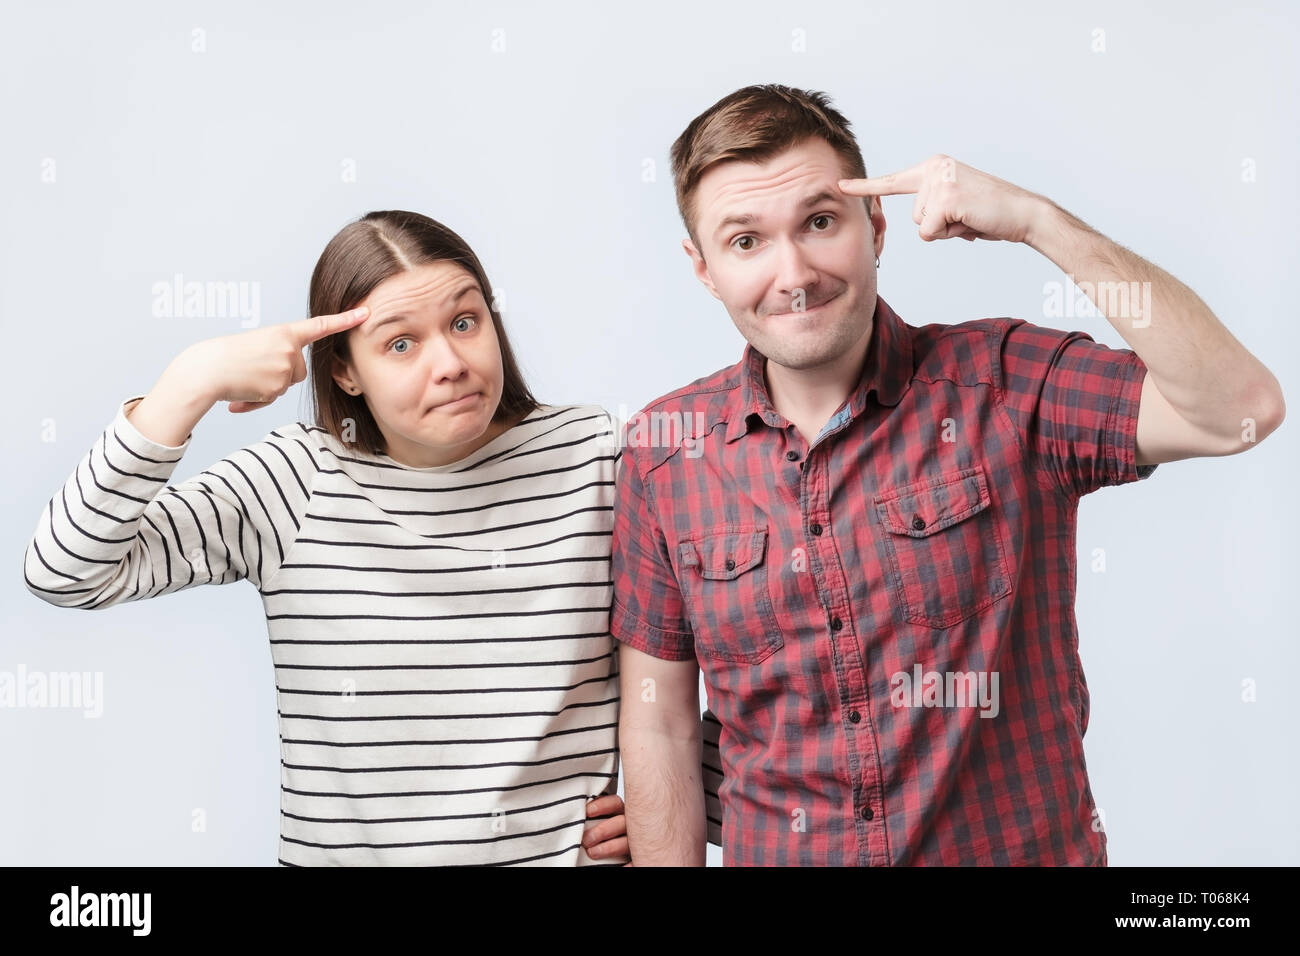 Funny young woman and man have dissatisfied facial expressions, keep index fingers on temples, - Stock Image